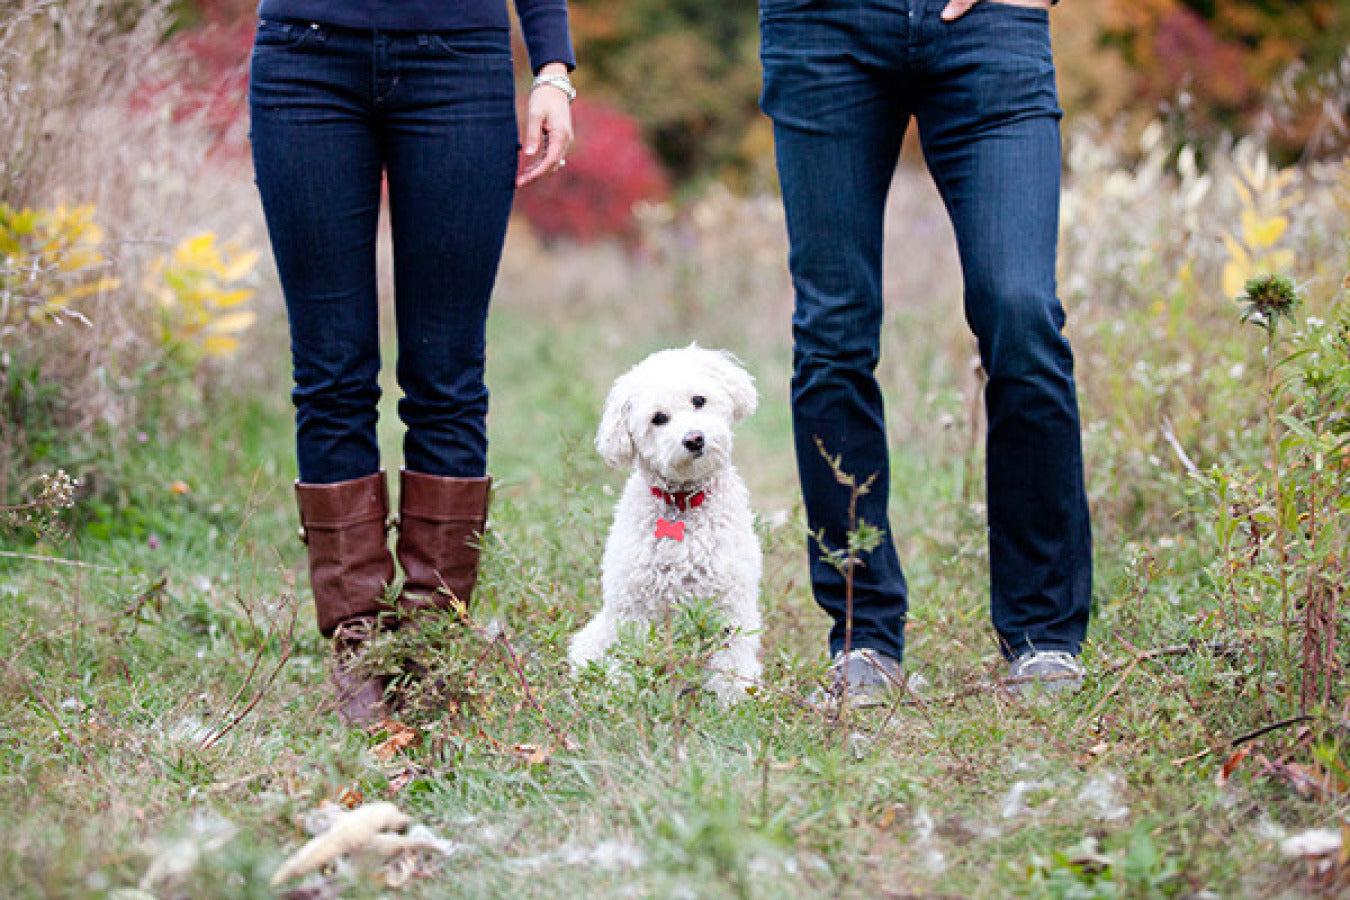 Inspiring Engagement Photos With Your Dog